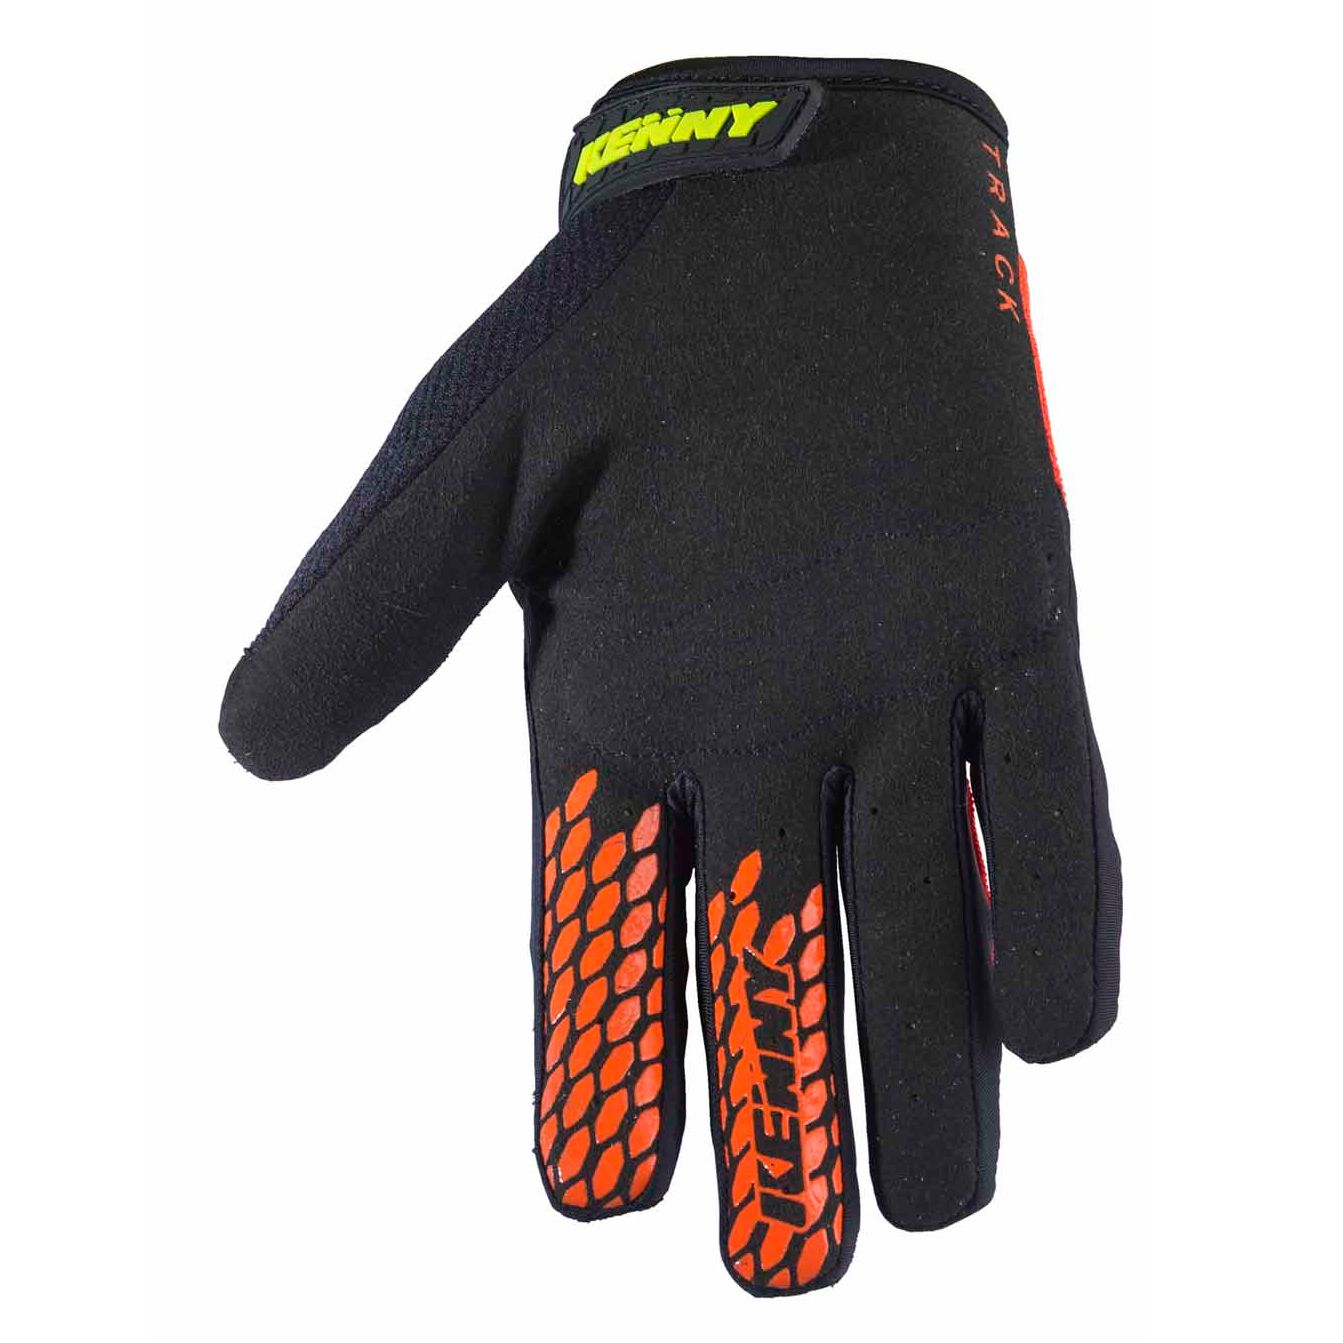 Gants cross Kenny TRACK YOUTH - NOIR ORANGE FLUO -